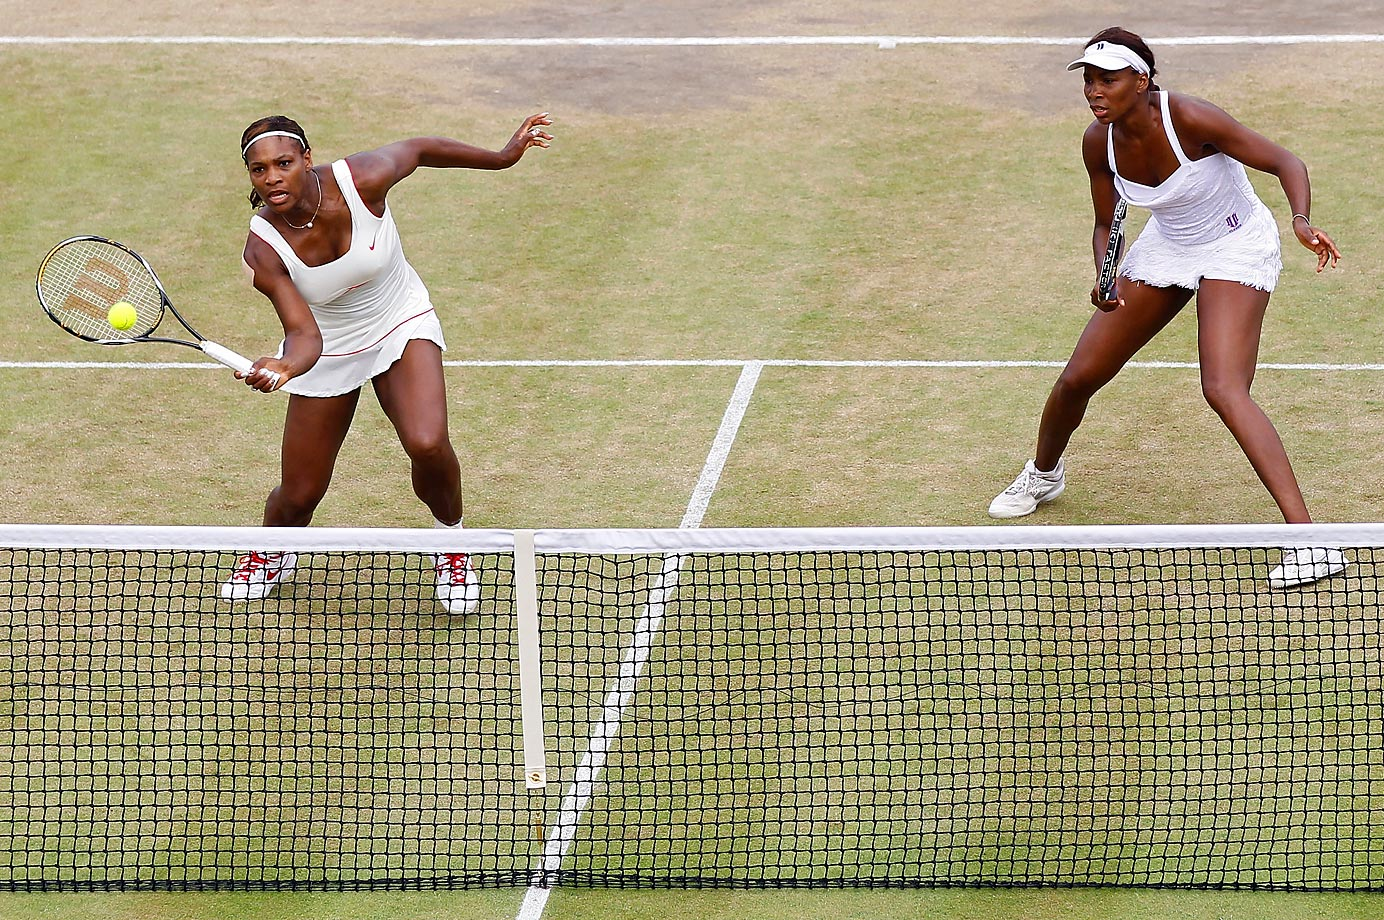 Serena and Venus, the two-time defending doubles champions at Wimbledon, lost in the quarterfinals in 2010. Serena cut her foot on a piece of glass a few days afterwards and missed the rest of the season.